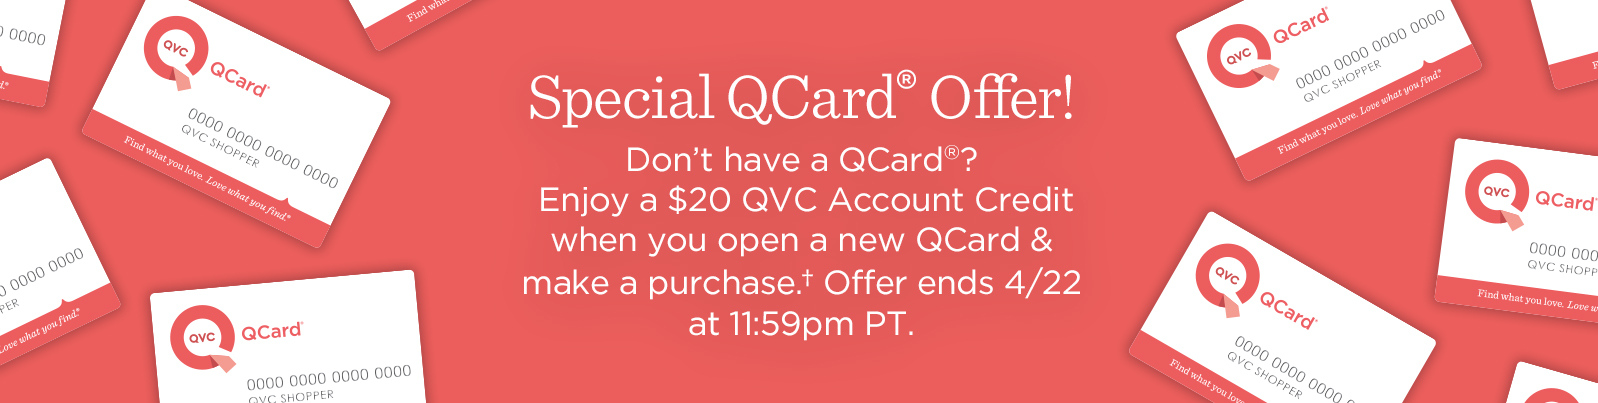 Special QCard® Offer  Don't have a QCard®? Enjoy a $20 QVC Account Credit when you open a new QCard & make a purchase.† Offer ends 4/22 at 11:59pm PT.